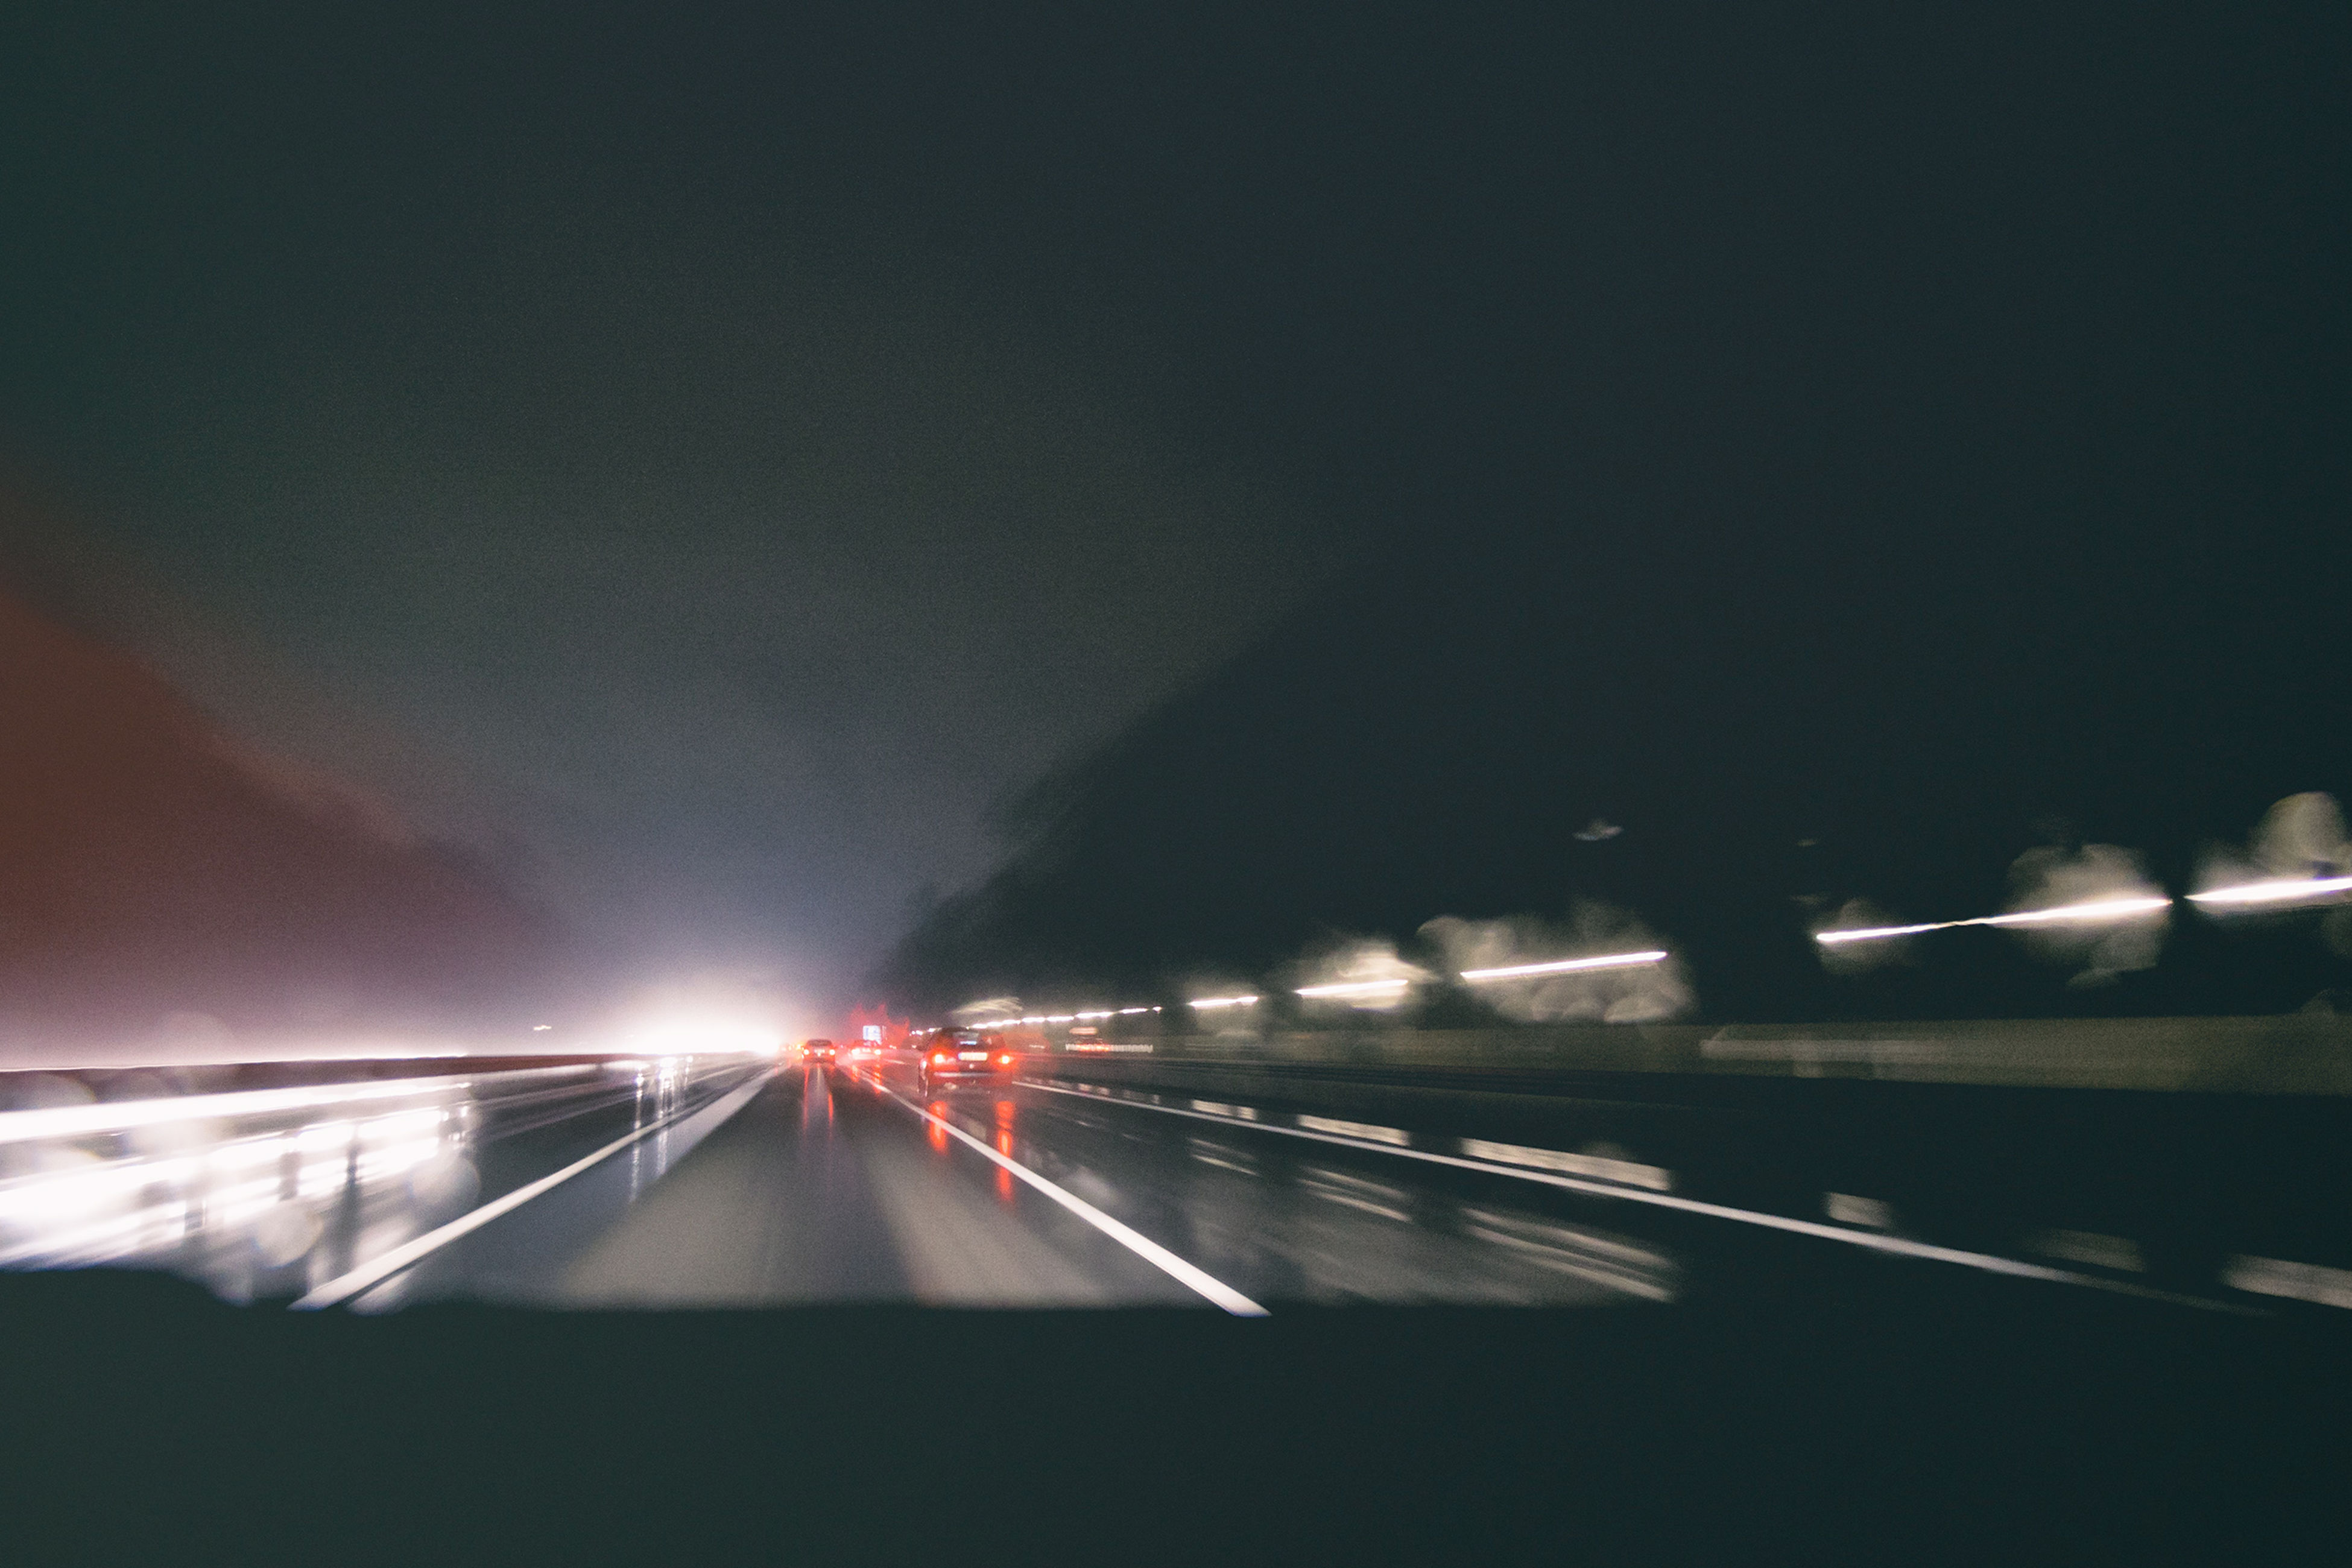 transportation, illuminated, road, night, speed, the way forward, on the move, motion, mode of transport, car, long exposure, blurred motion, land vehicle, road marking, highway, sky, light trail, diminishing perspective, travel, street